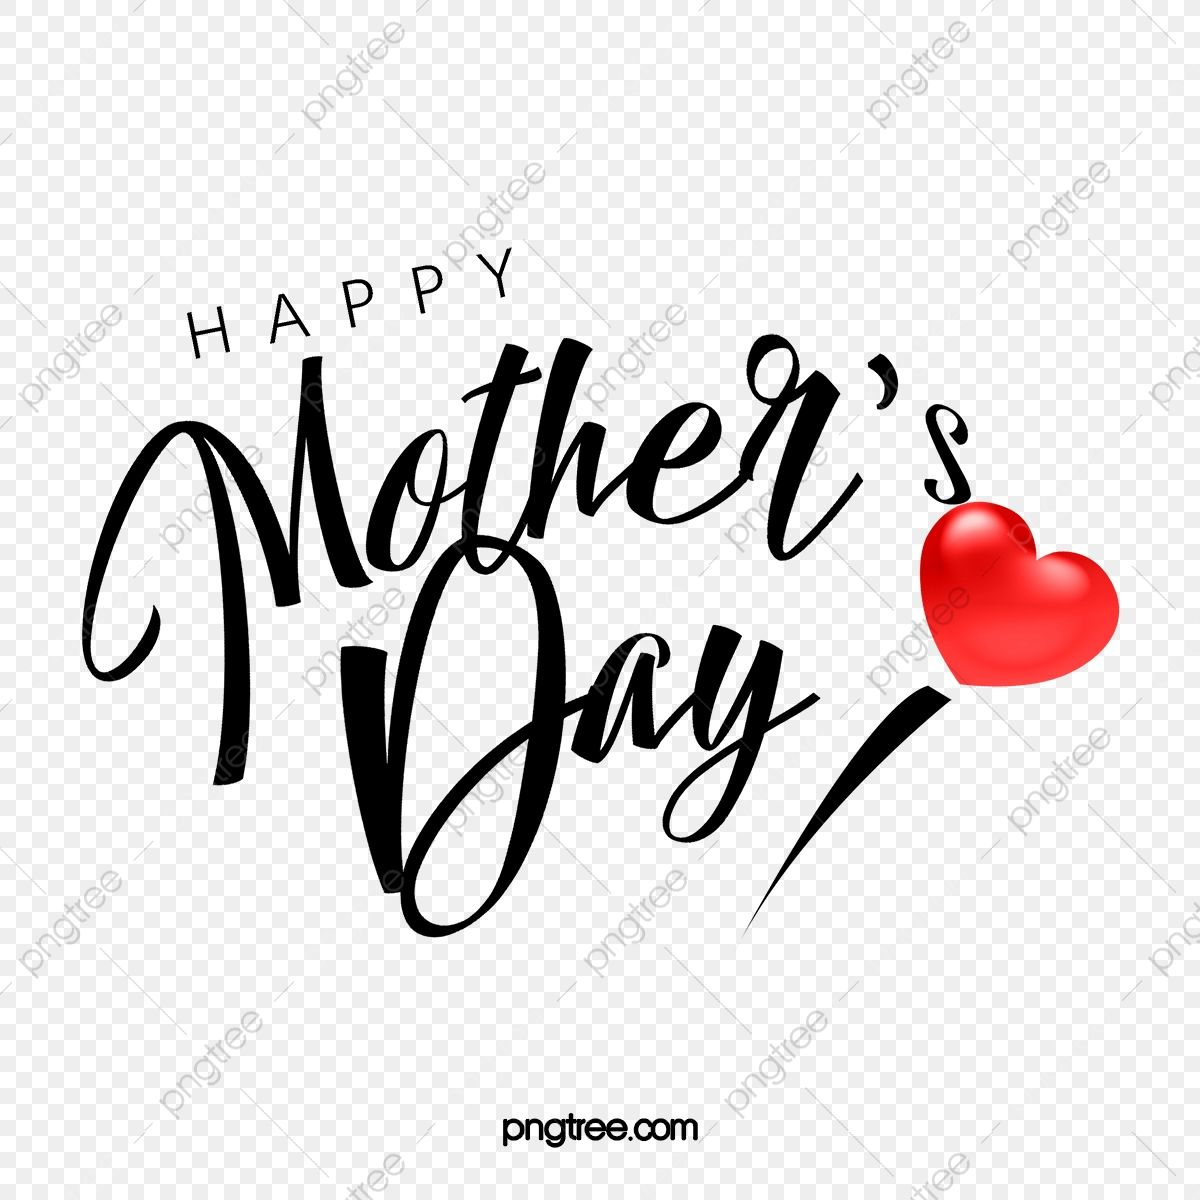 Red Love Happy Mother S Day Greetings Mothers Day Art Words Of Mothers Day Holiday Art Word Png Transparent Clipart Image And Psd File For Free Download In 2021 Happy Mothers